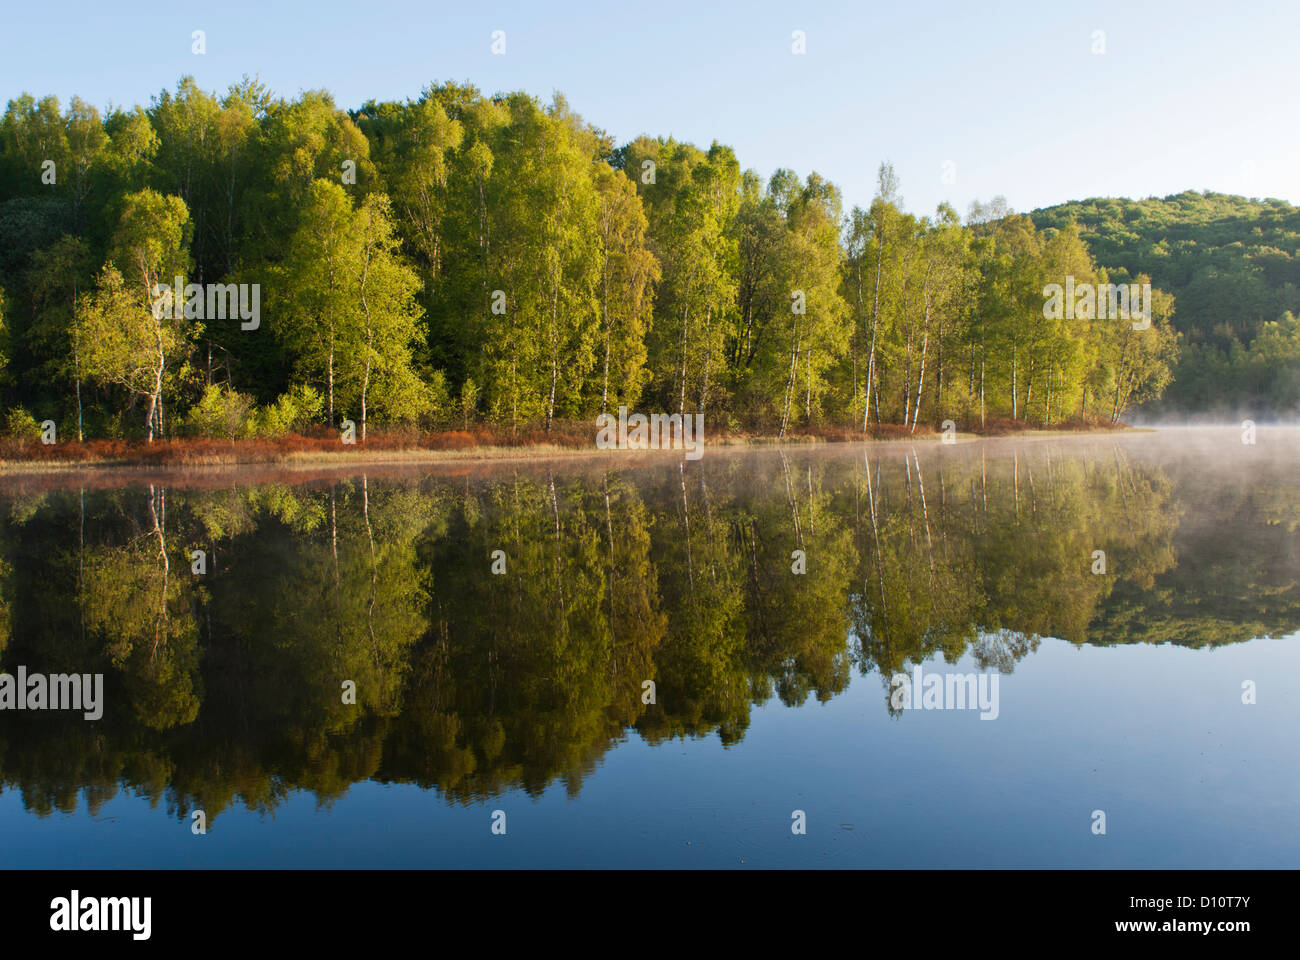 Calm lake and early morning mist. - Stock Image